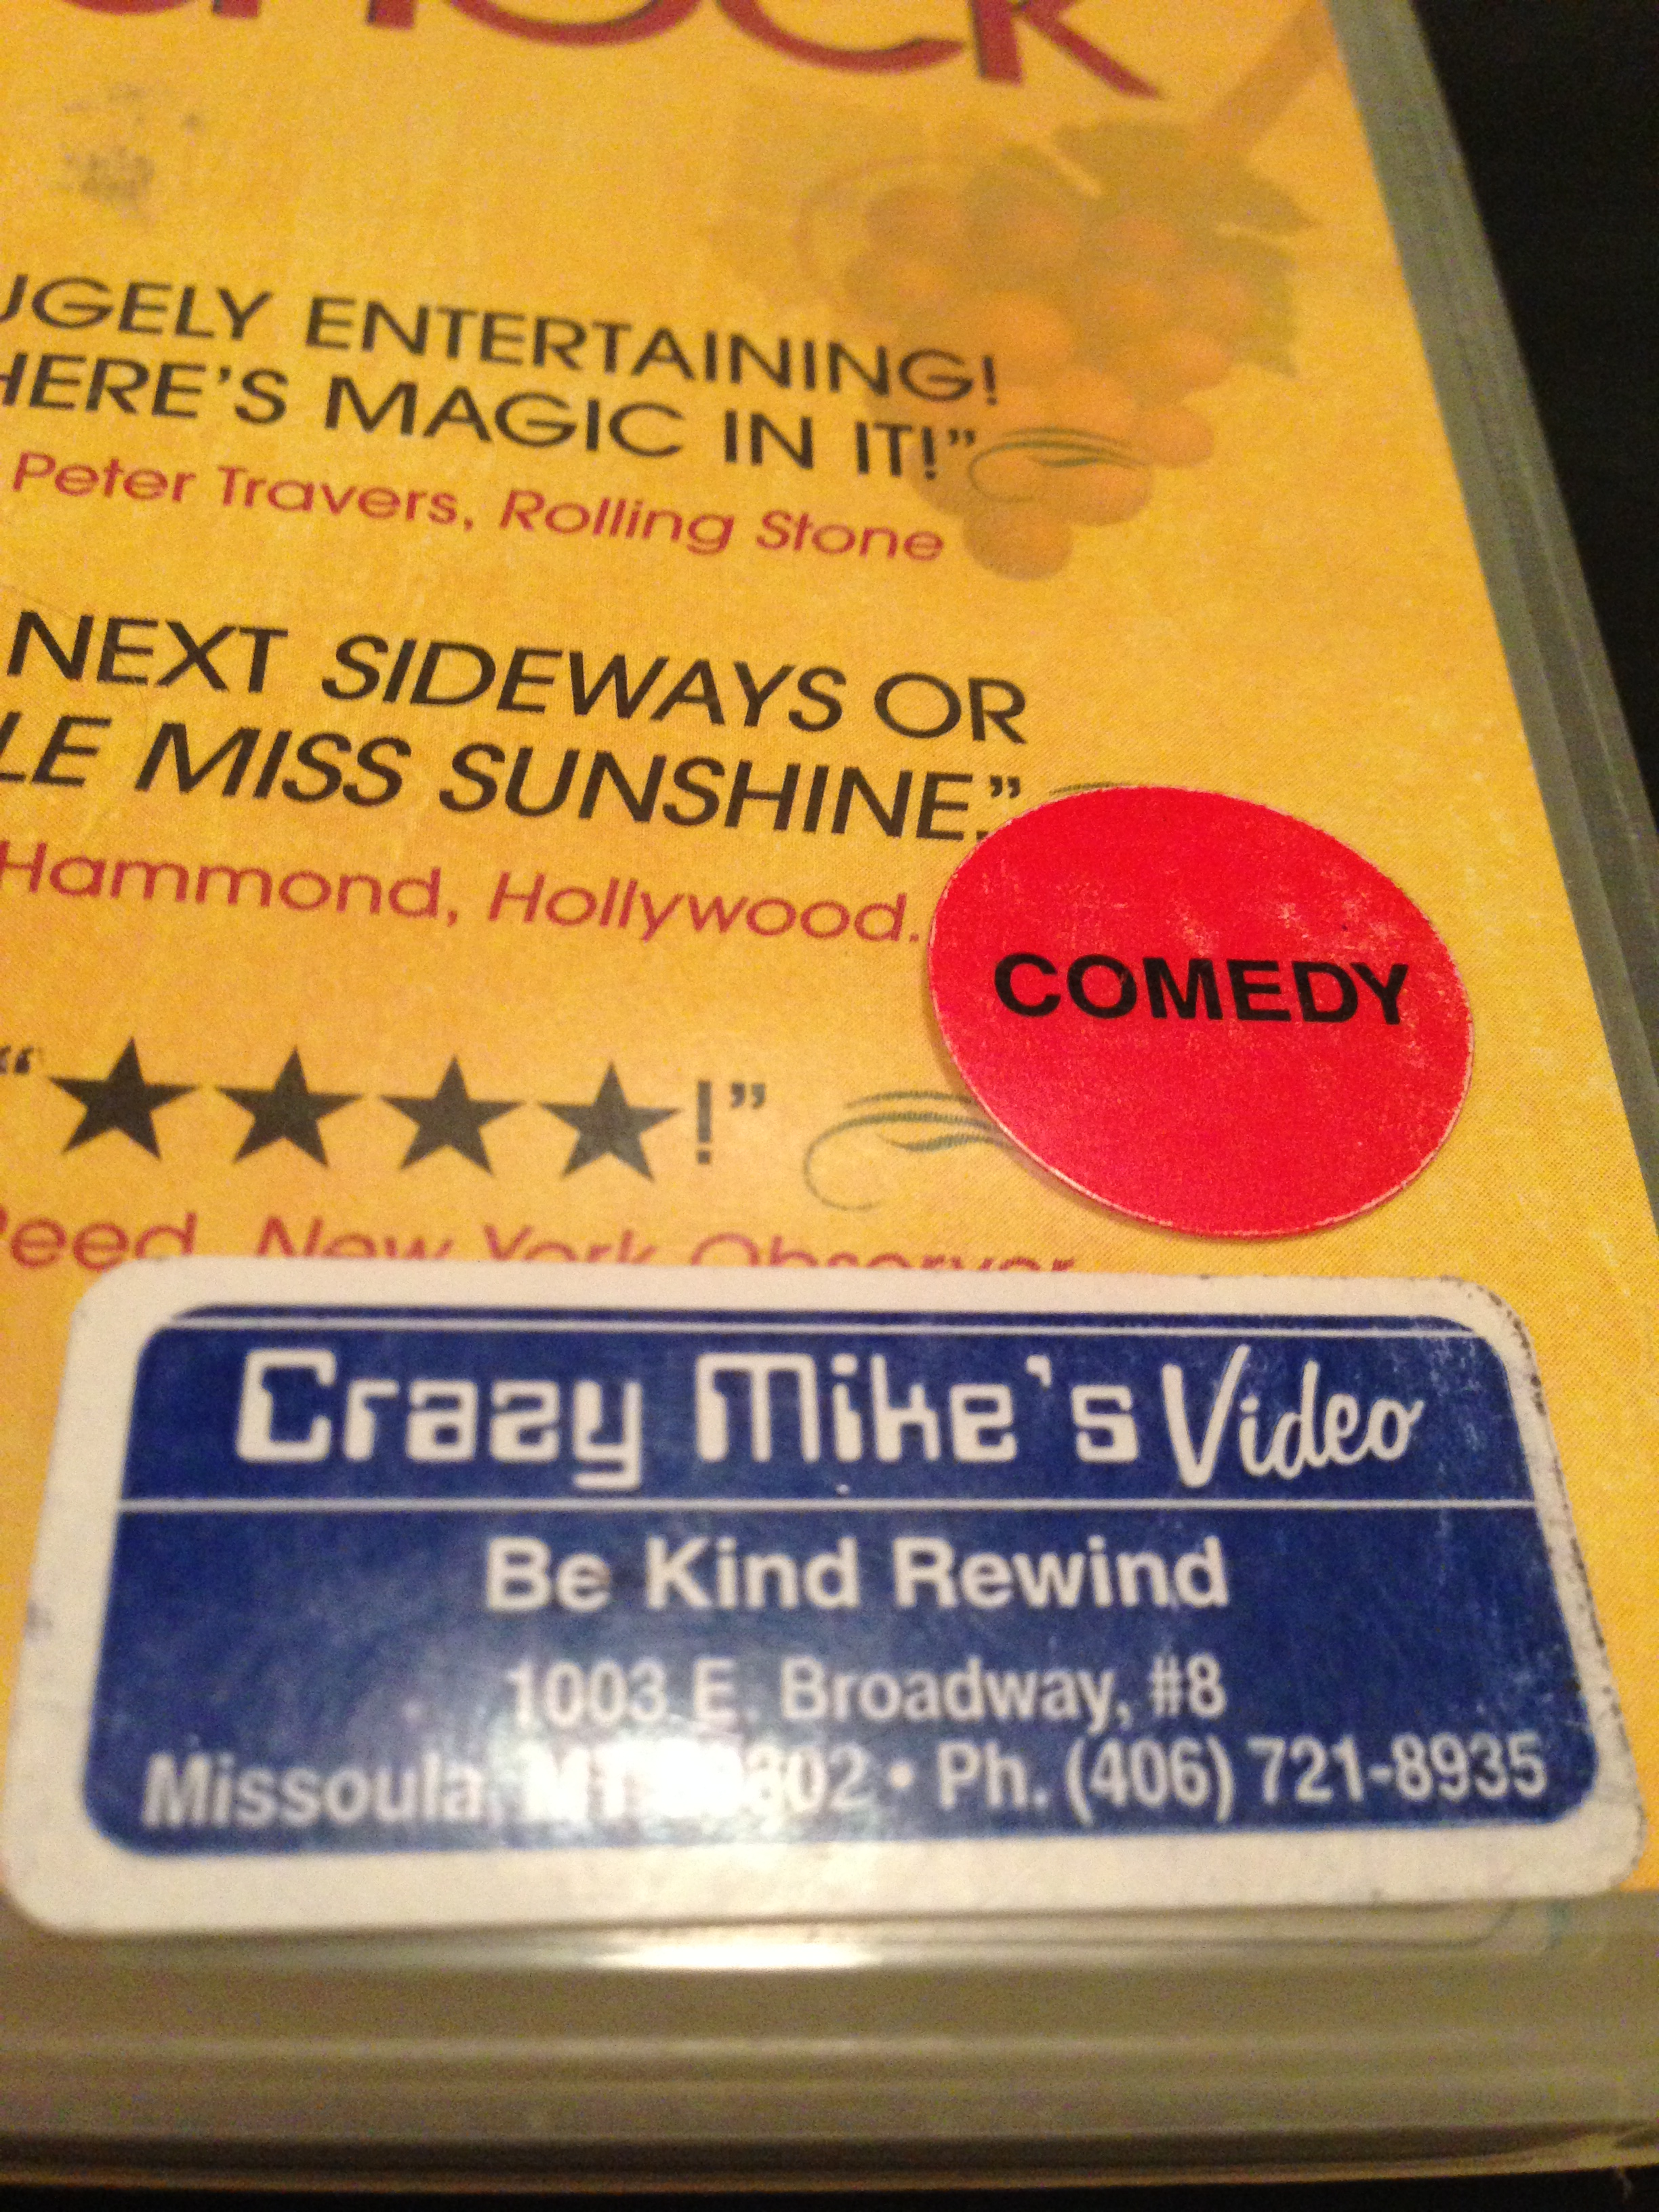 This unnecessary message graces each Crazy Mike's DVD.